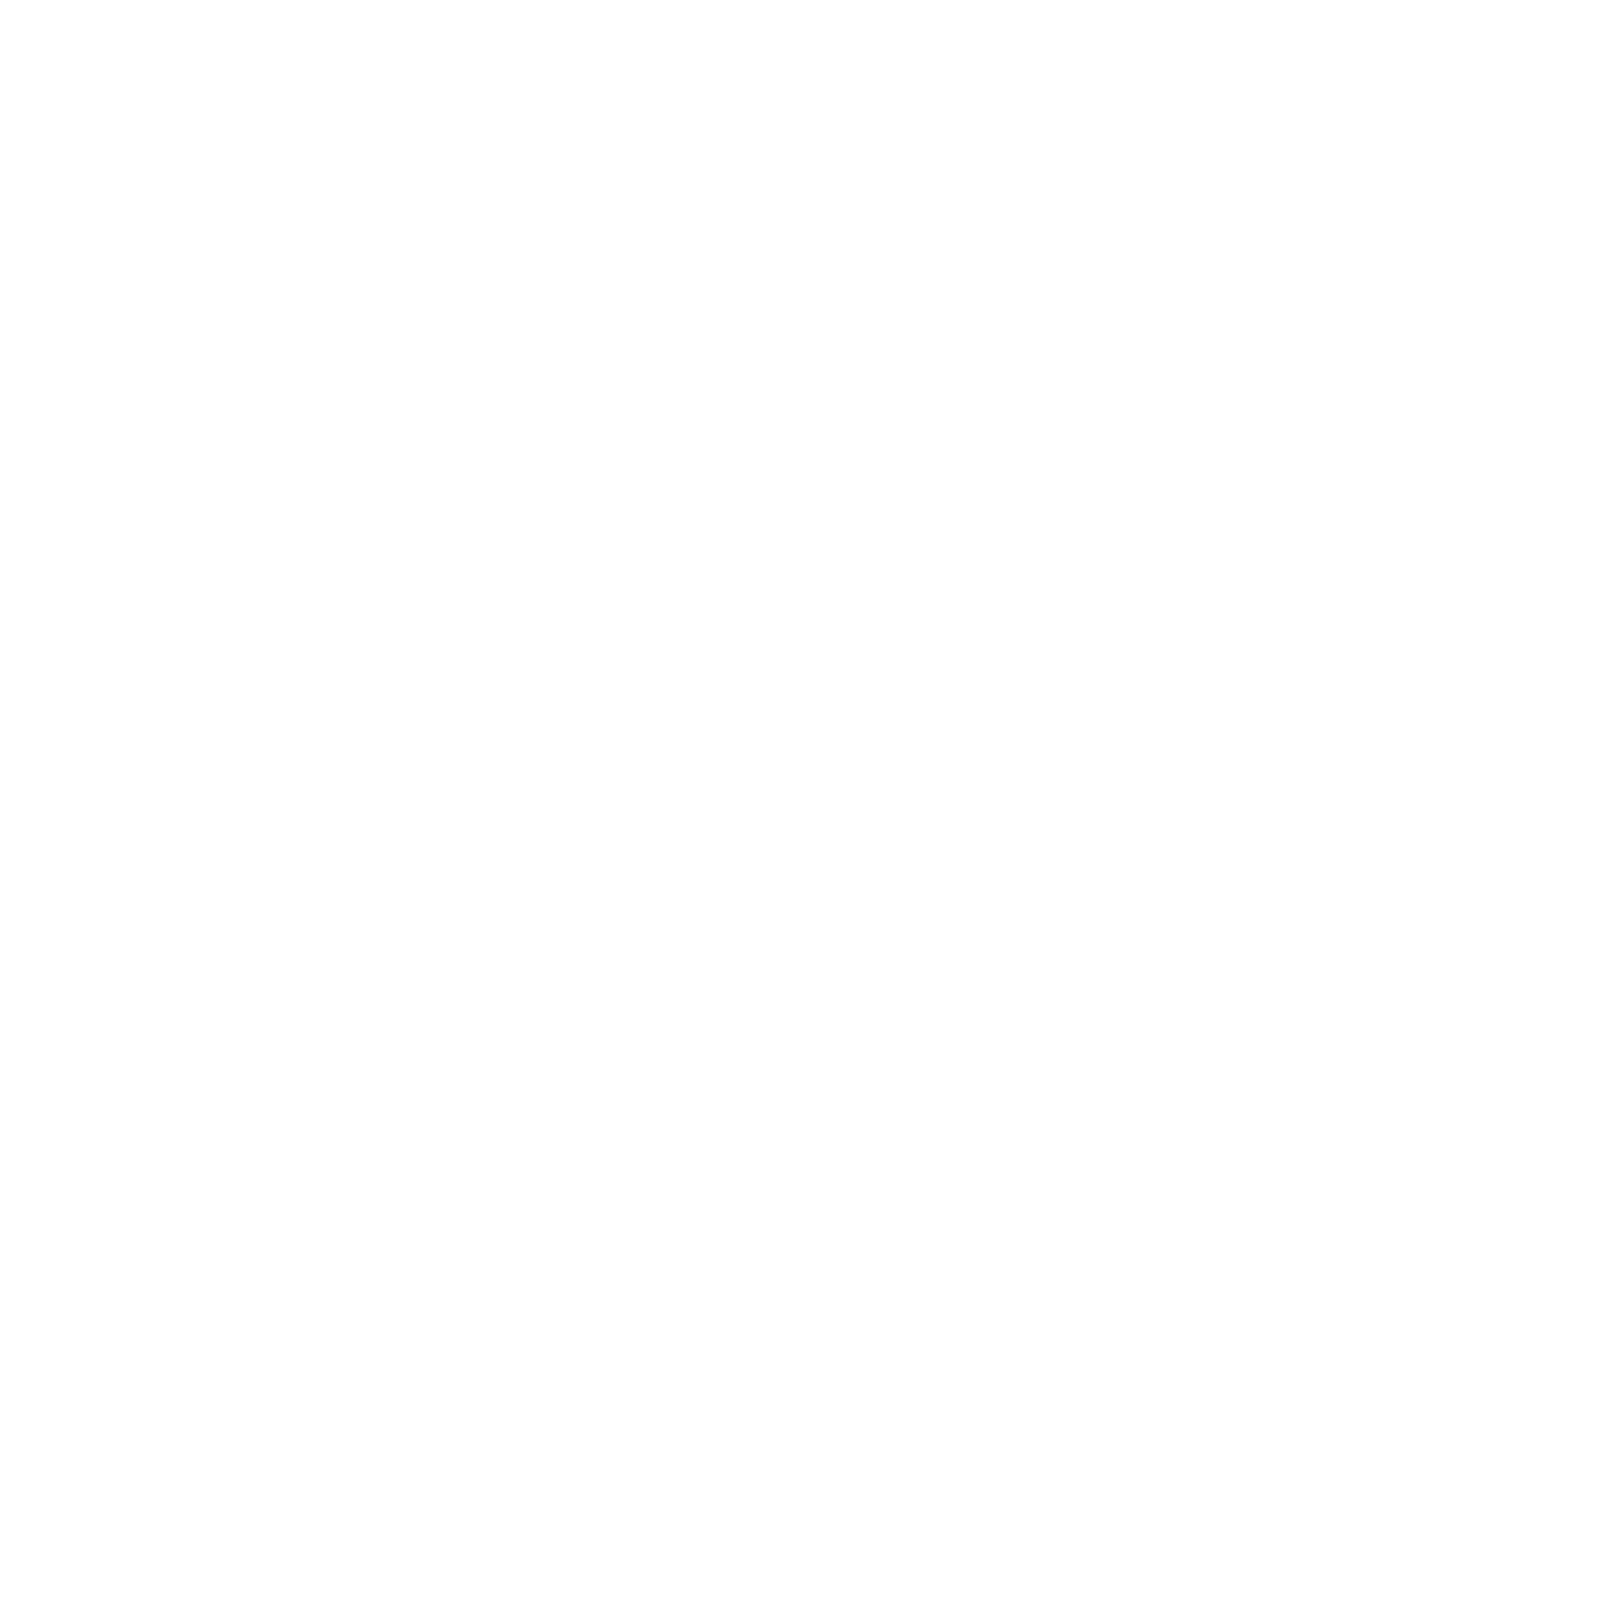 woolwich-project-logo